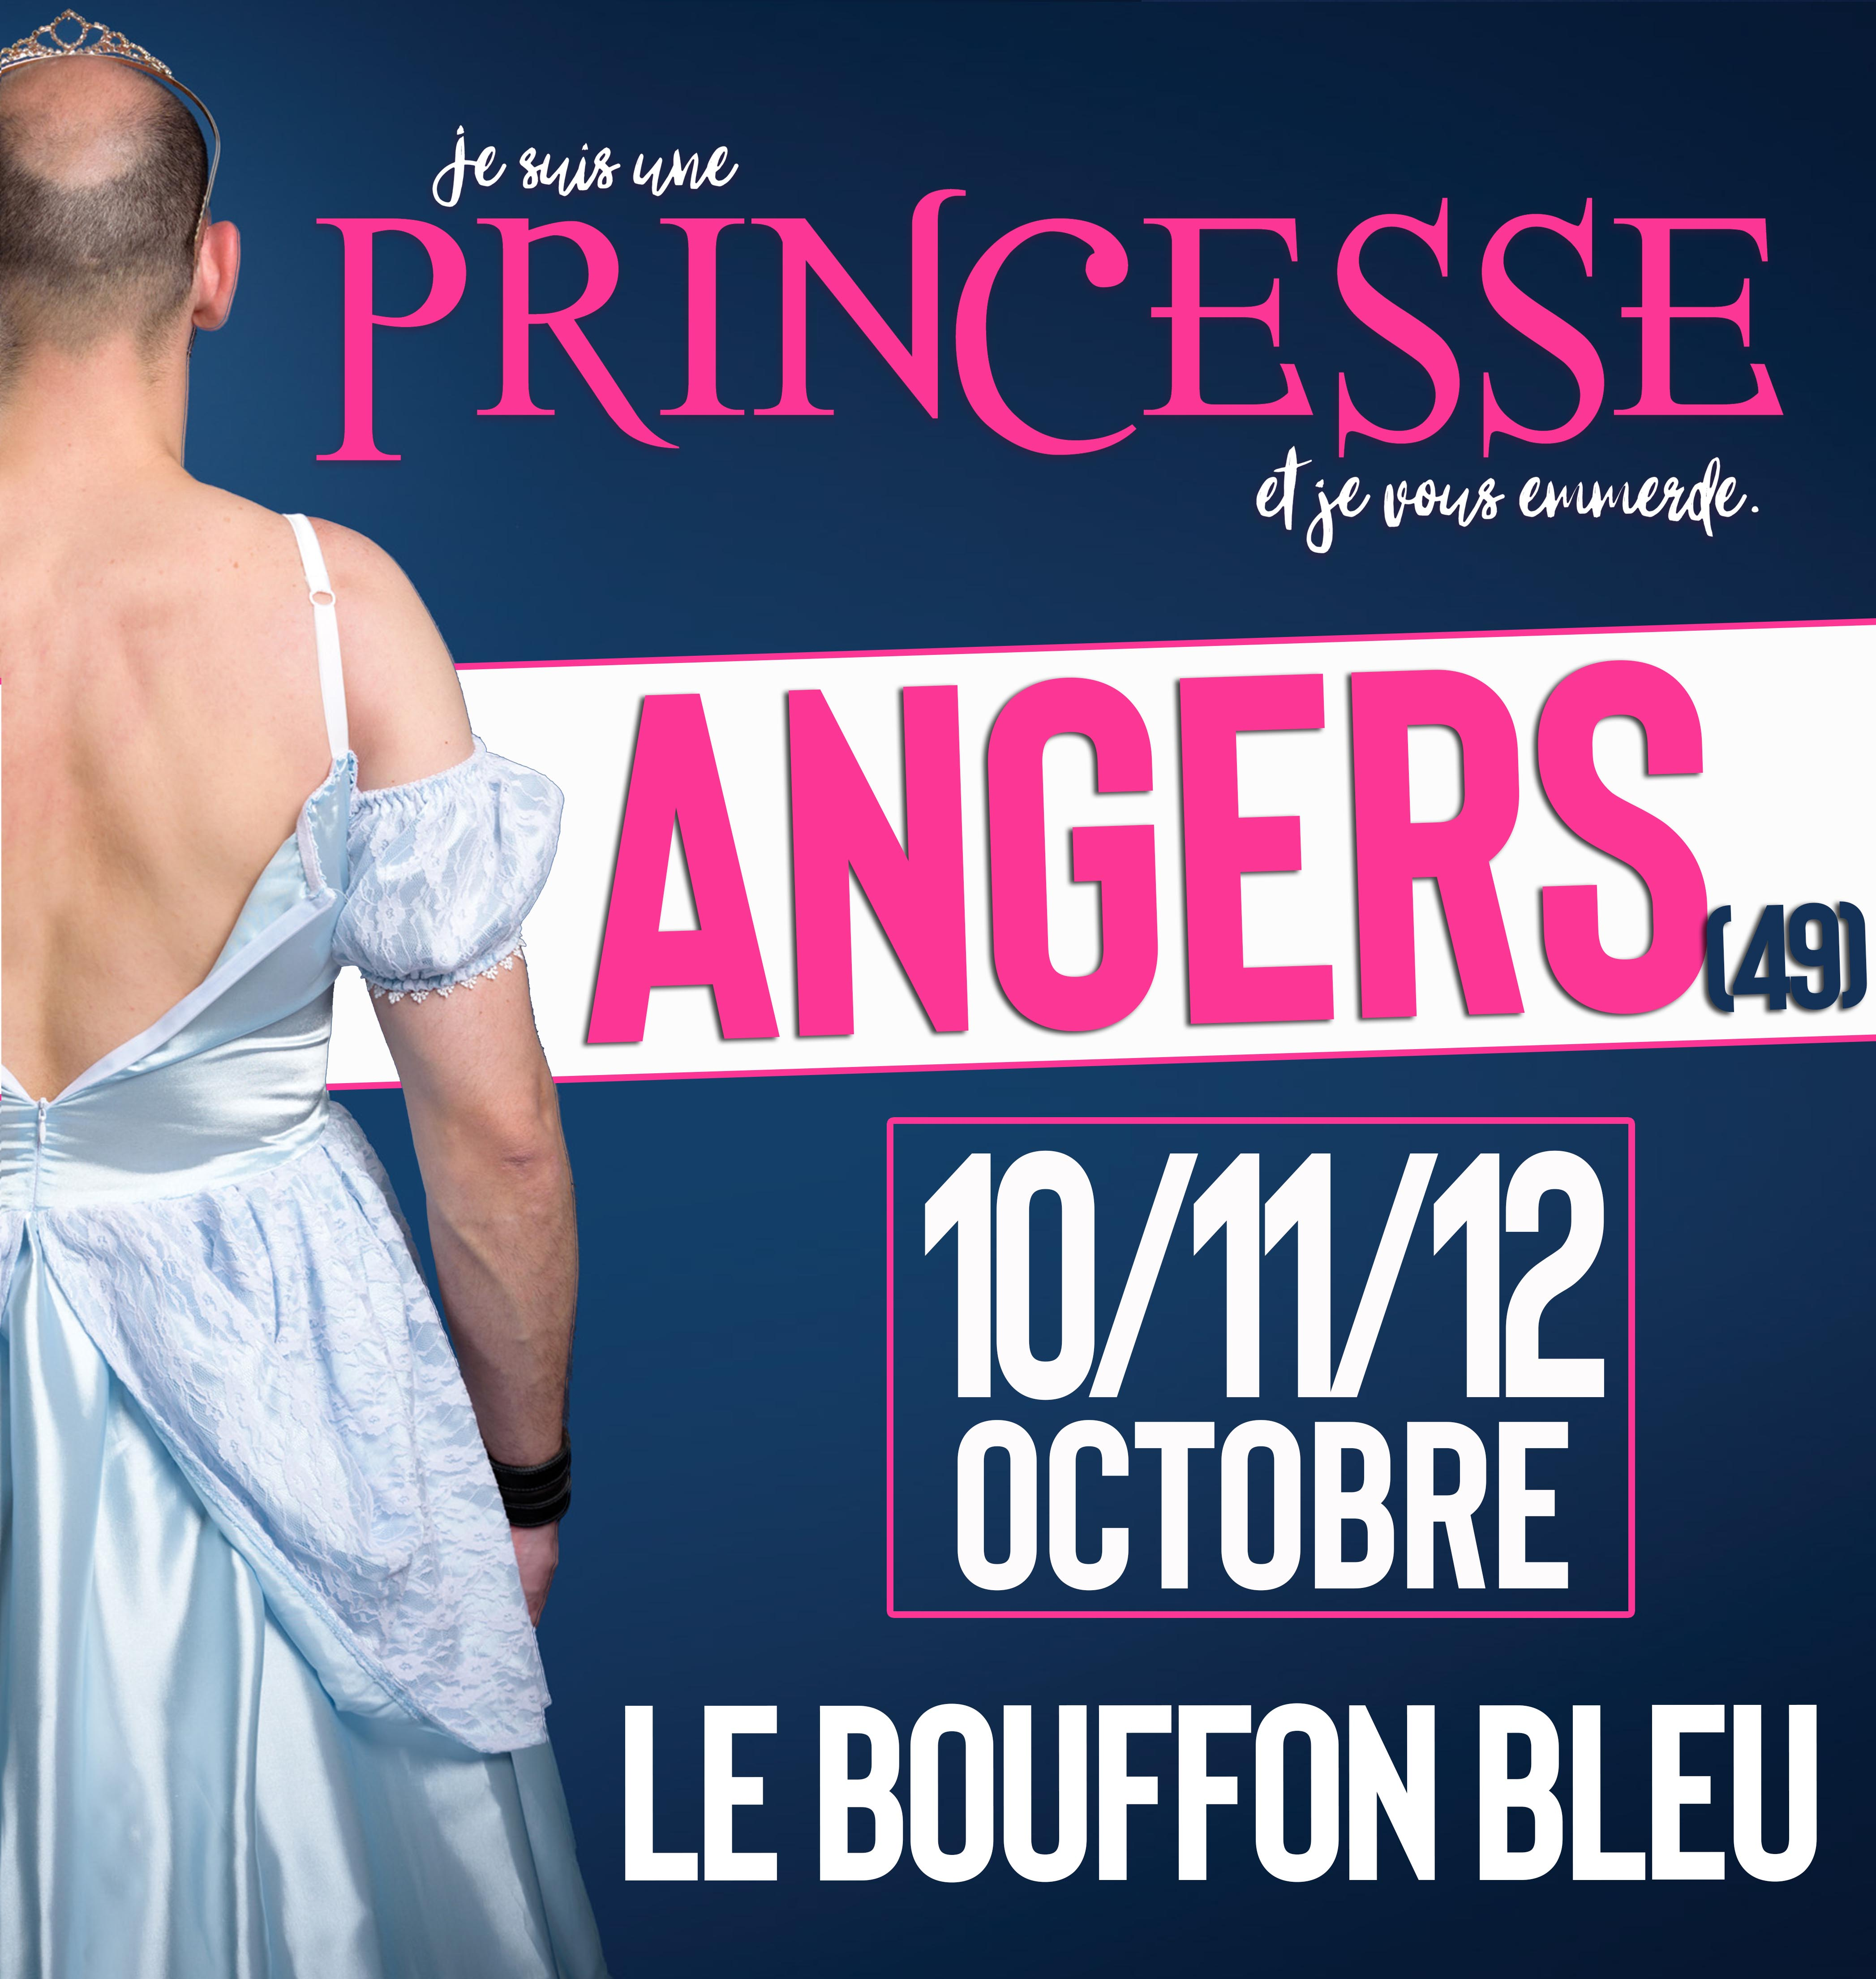 angers19-10